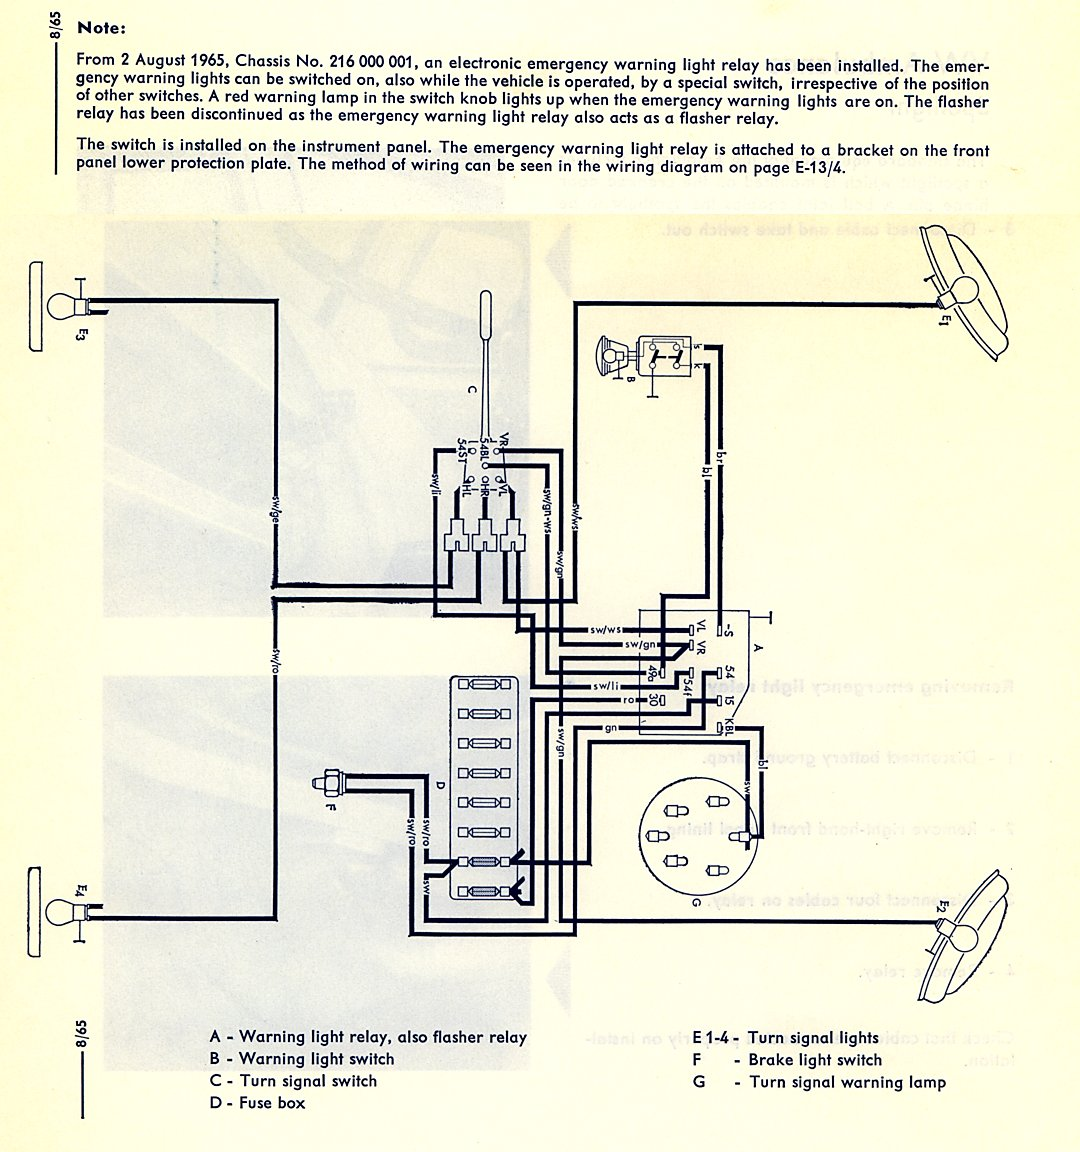 turn signal ke light wiring diagram detailed schematics diagram rh lelandlutheran com 1965 VW Wiring Diagram VW Alternator Wiring Diagram